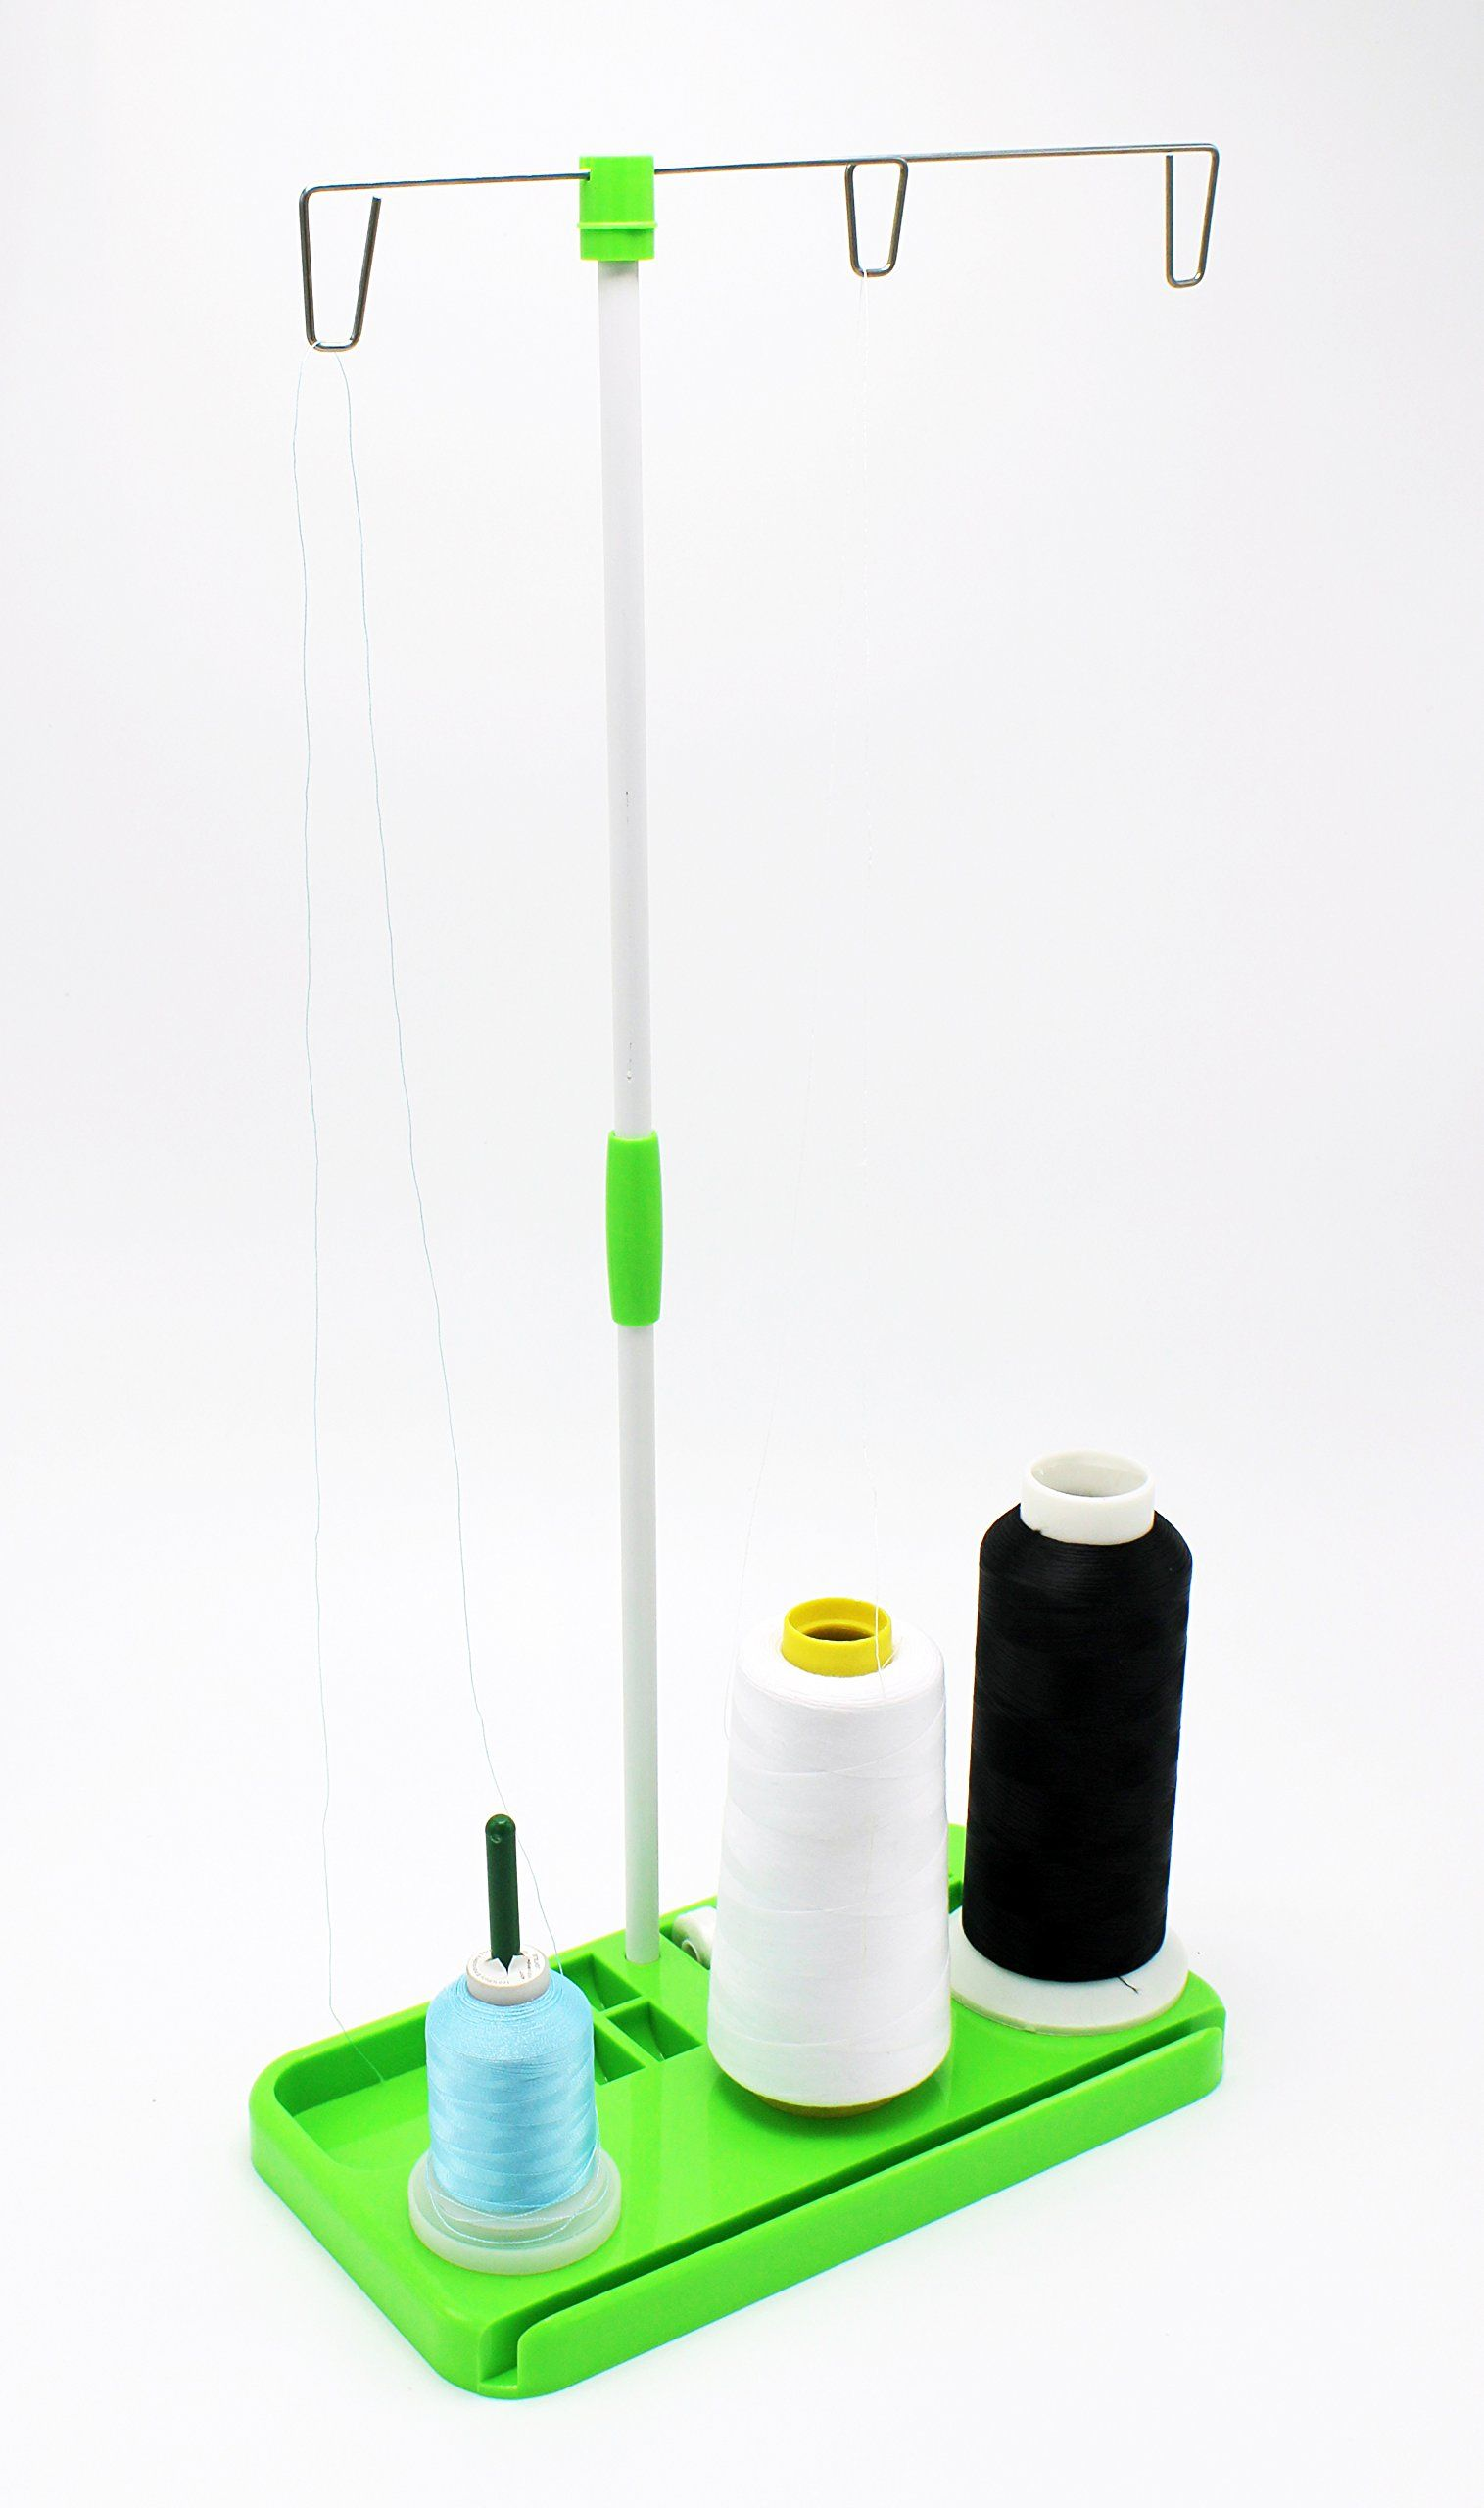 Sewing /& Embroidery Machines-White 3 Spool Thread Stand for Overlock Sergers